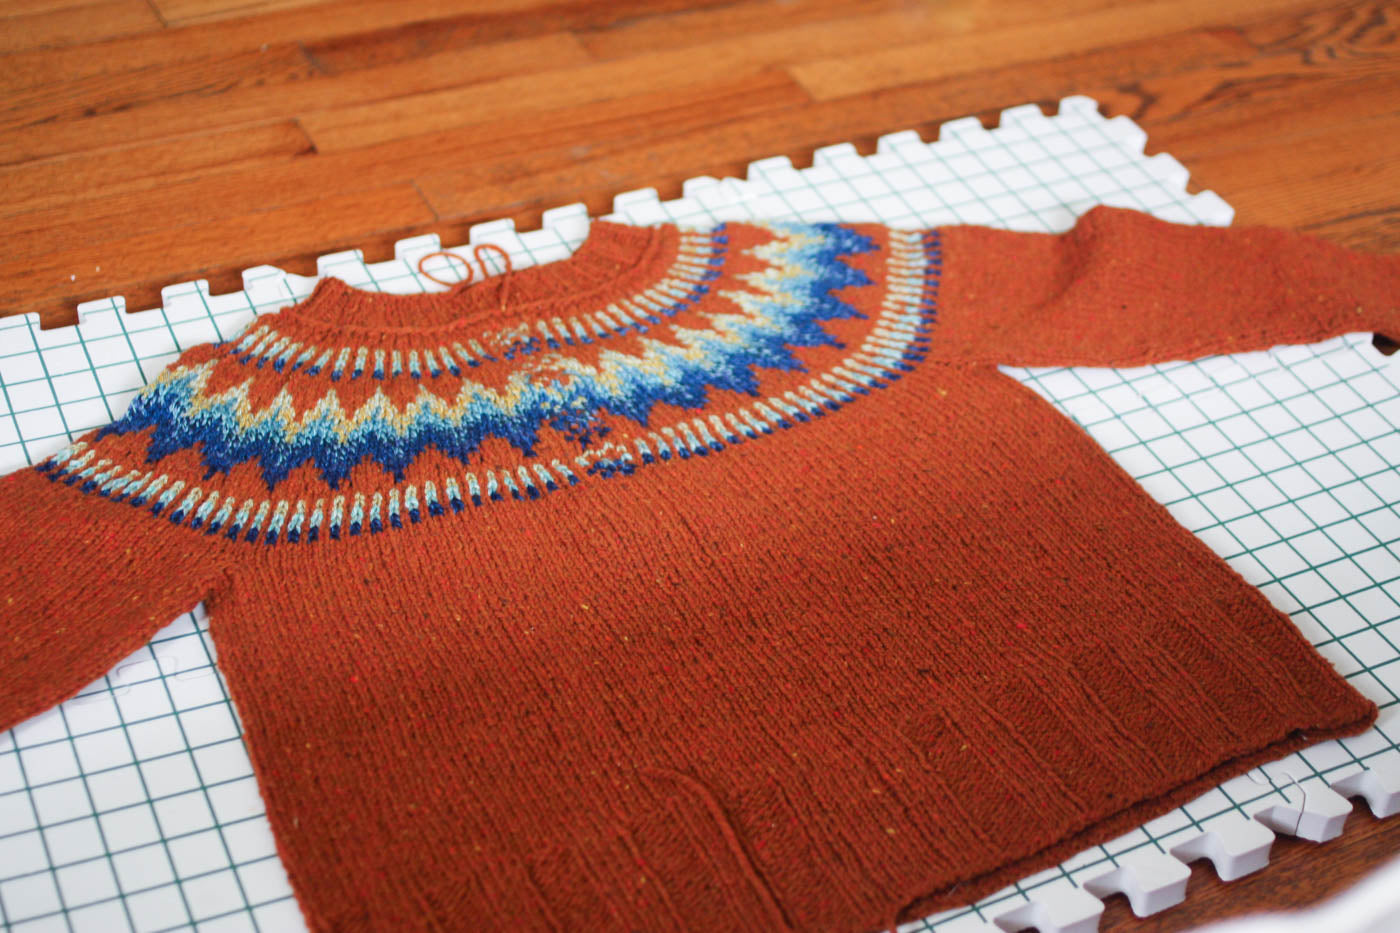 Lay flat photograph of sweater being blocked. Sweater is an embers orange with the top having an ombre in a diamond pattern of blues, green and yellow.